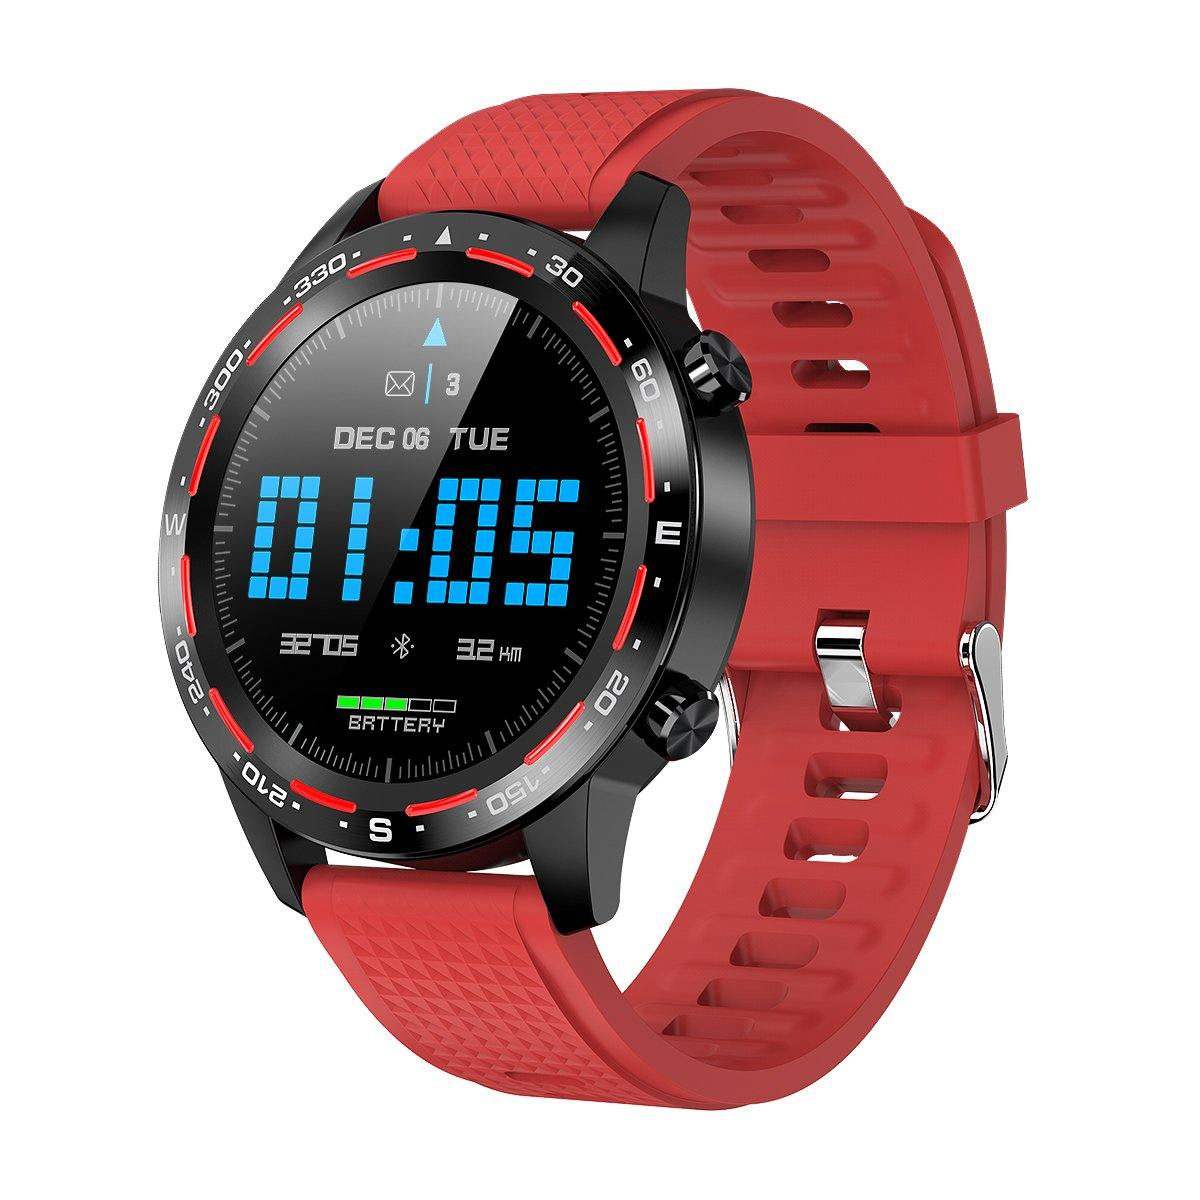 Microwear L12 Fitness/Smartwatch - Red Strap